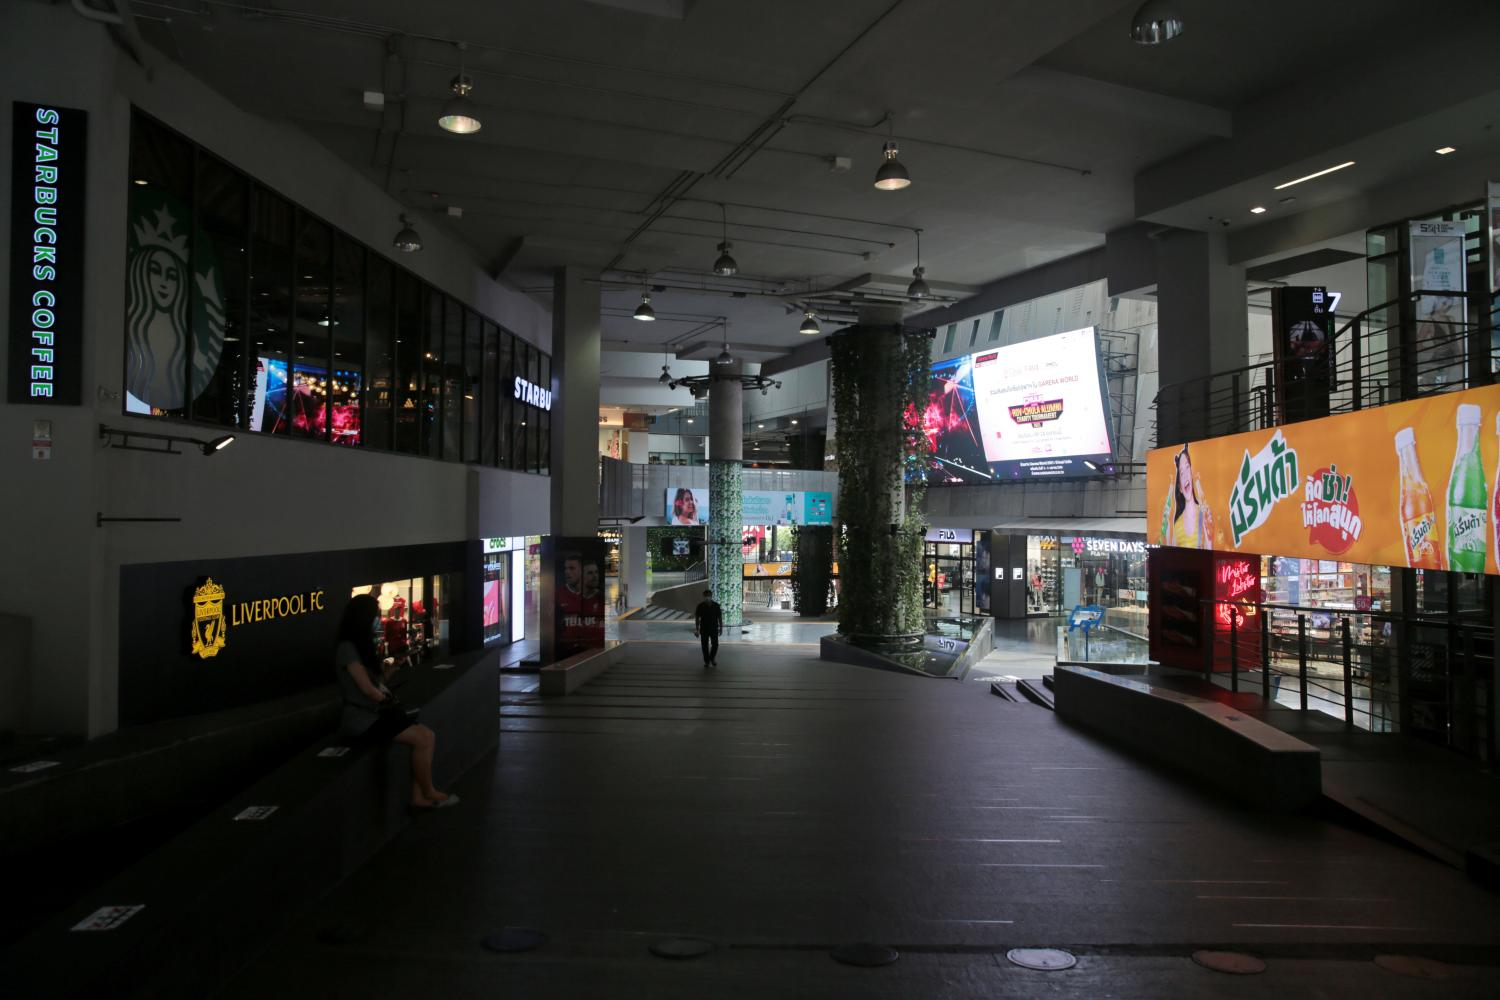 Pathumwan district is almost deserted amid the third wave of Covid-19, which has dealt yet another blow to retailers still struggling as a result of previous outbreaks.(Photo by Chanat Katanyu)